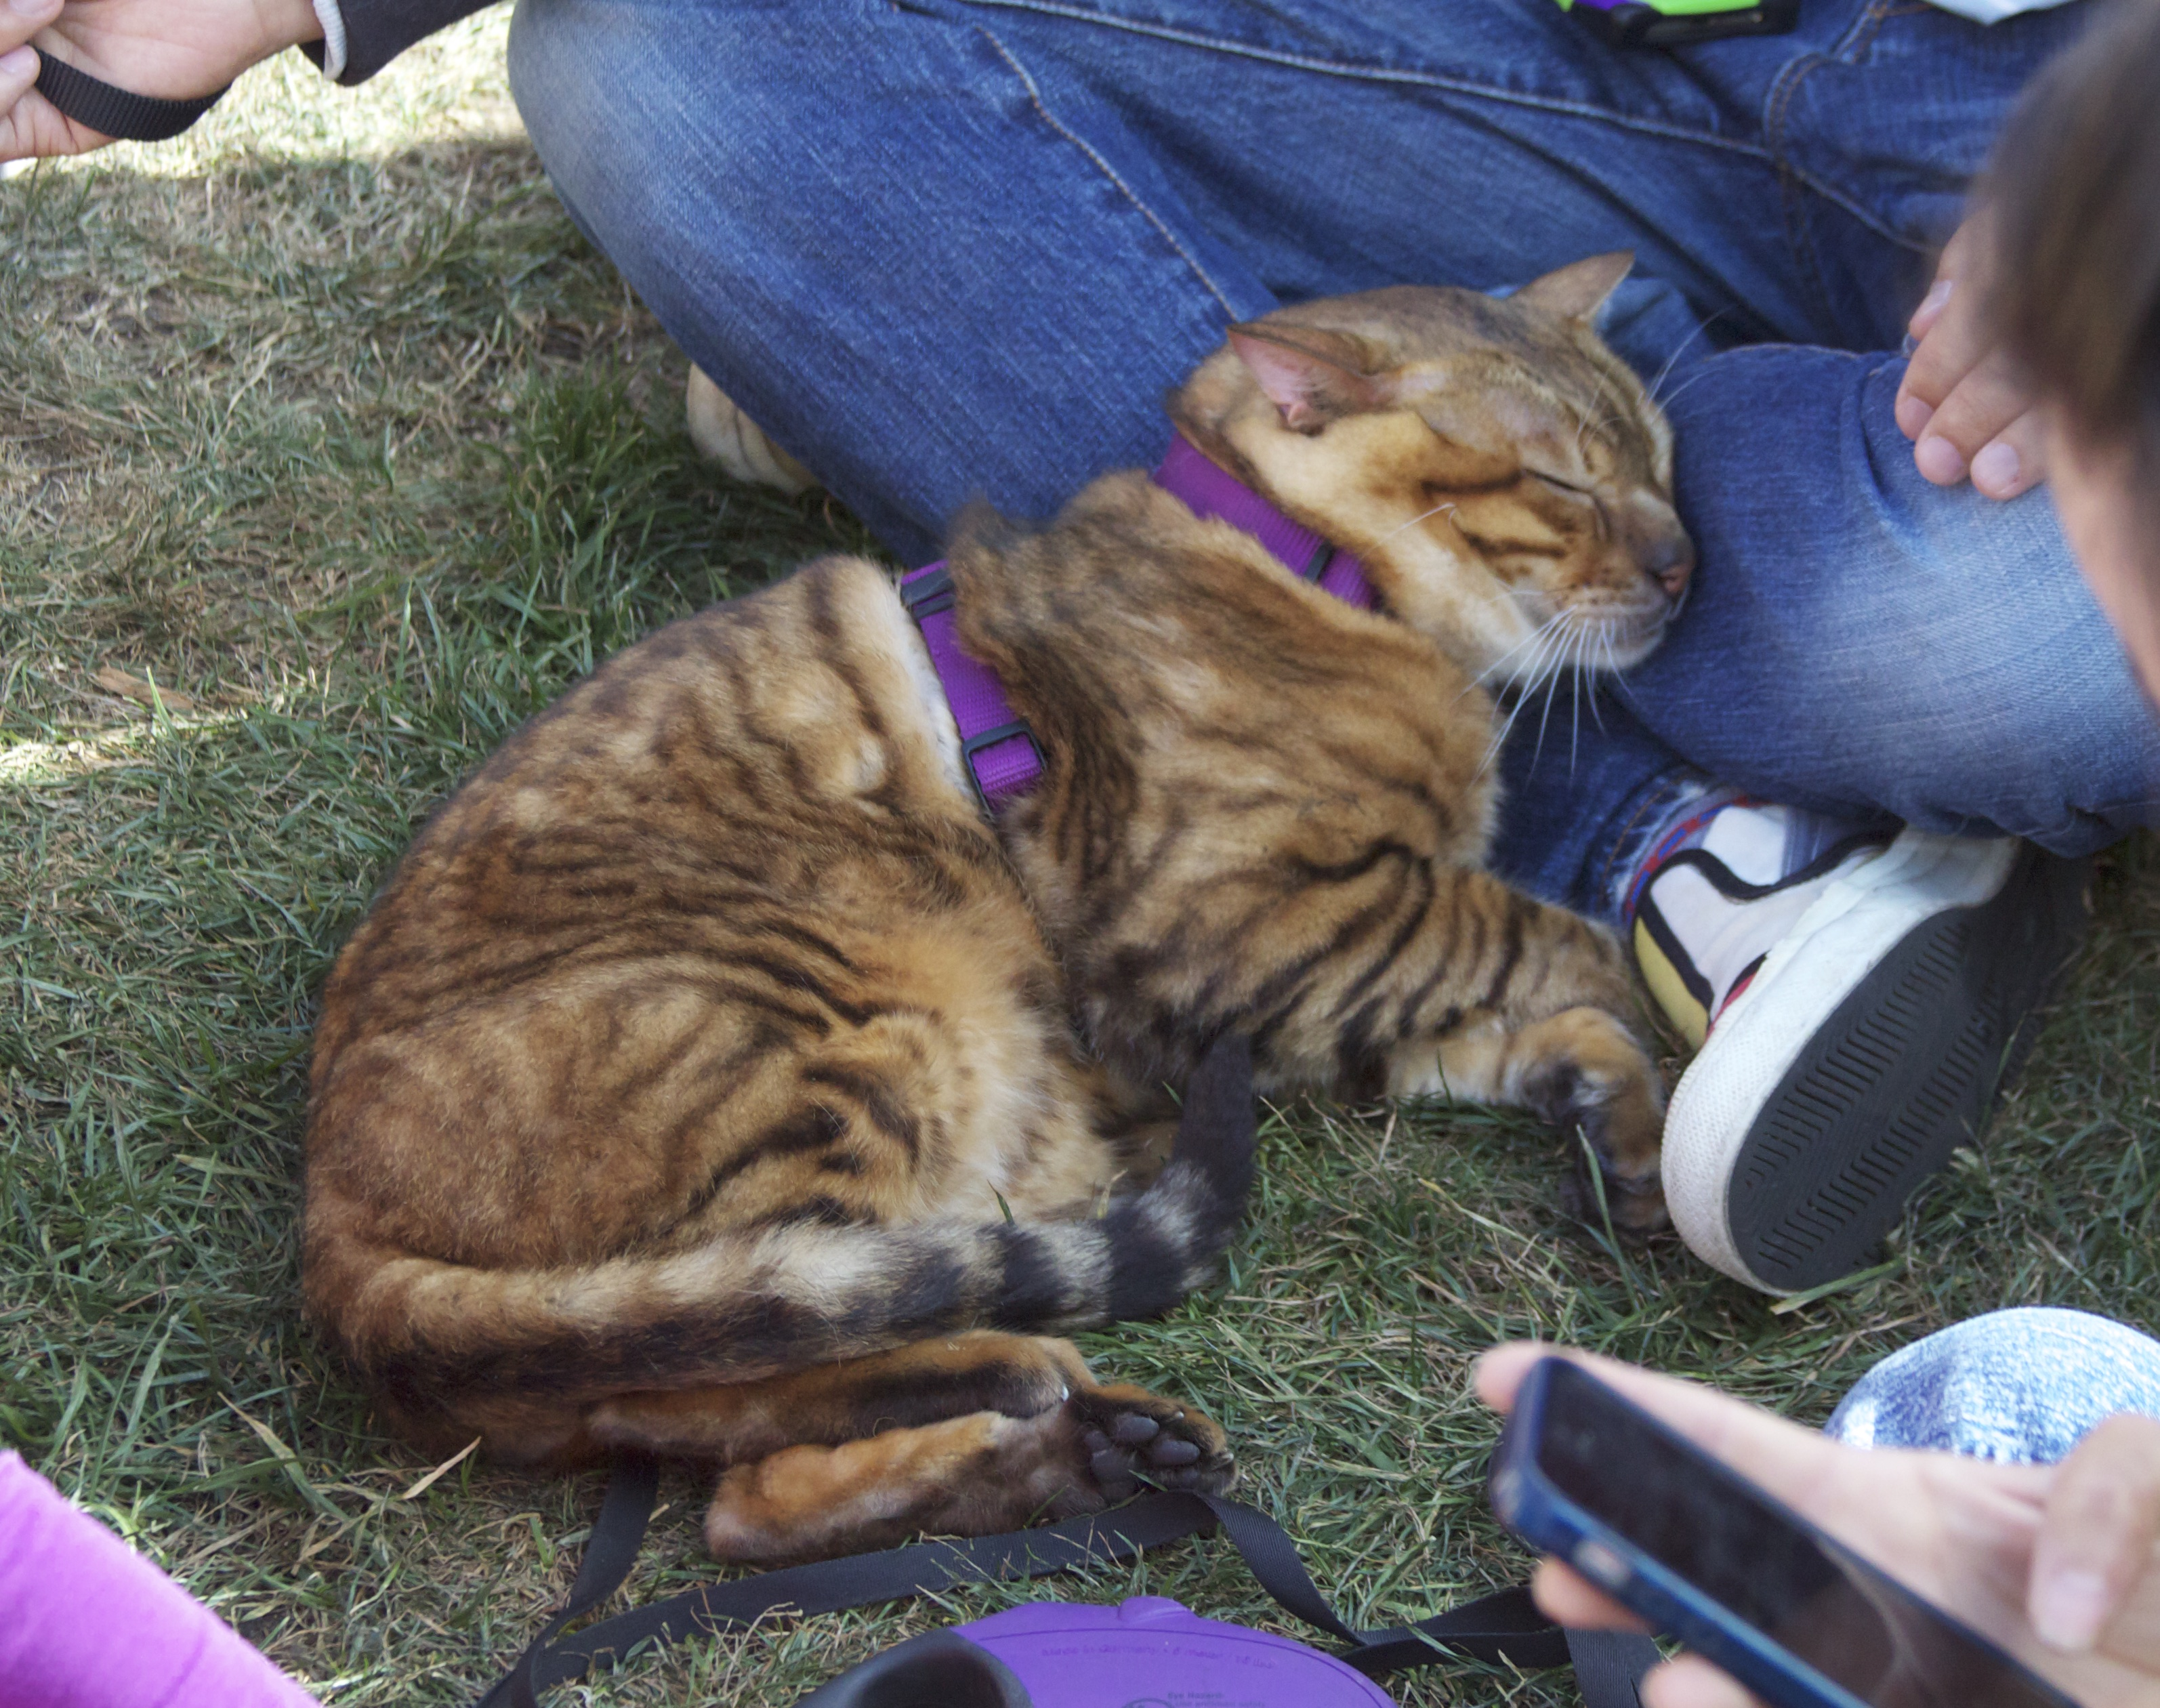 Orange And Black Tiger Tabby Cat Sleeping On The Grass With Head On Man's Leg